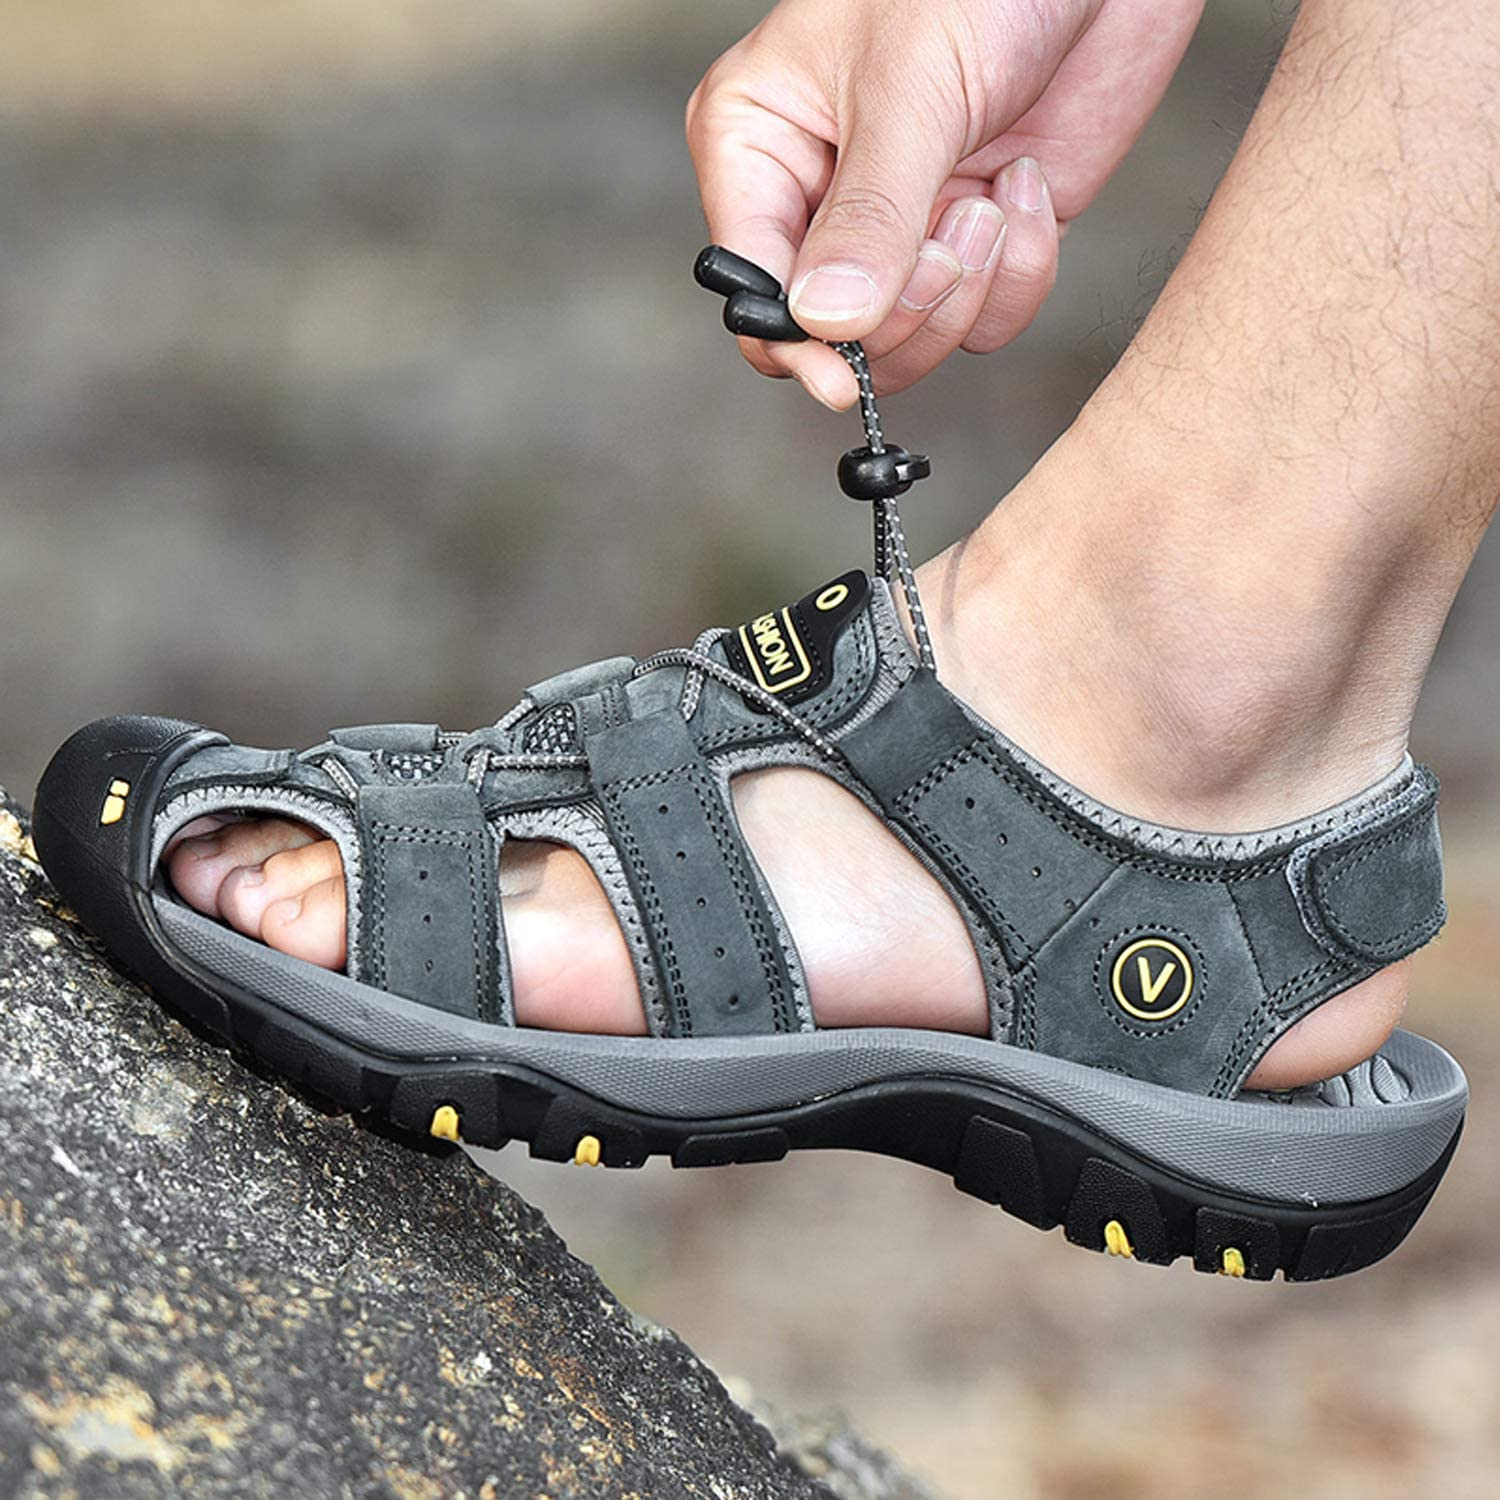 Unitysow Men Sandals Closed Toe Walking Fastening Hiking Sport Shoes Leather Sandals Summer Outdoor Casual Fishermen Beach Sandal